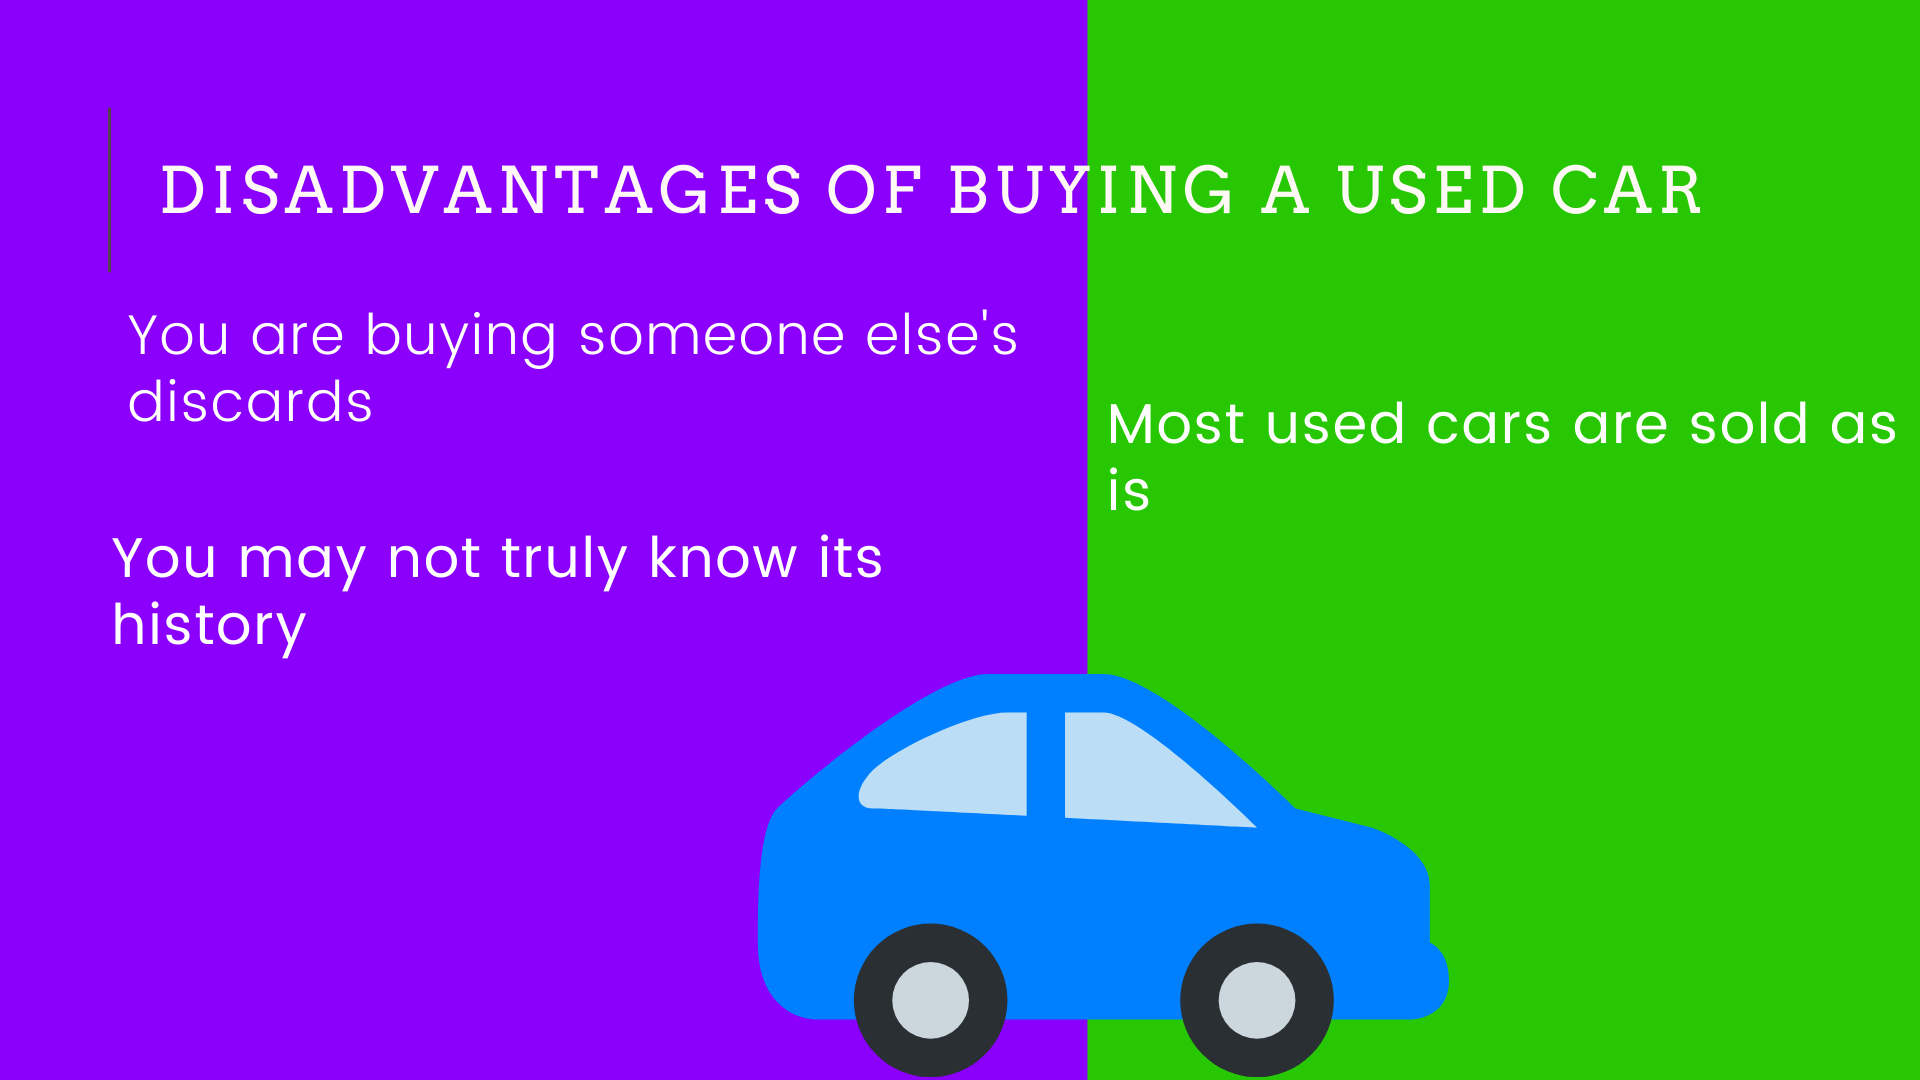 1:You are buying someone else's discards. 2:Most used cars are sold as is. 3:You may not truly know its history.